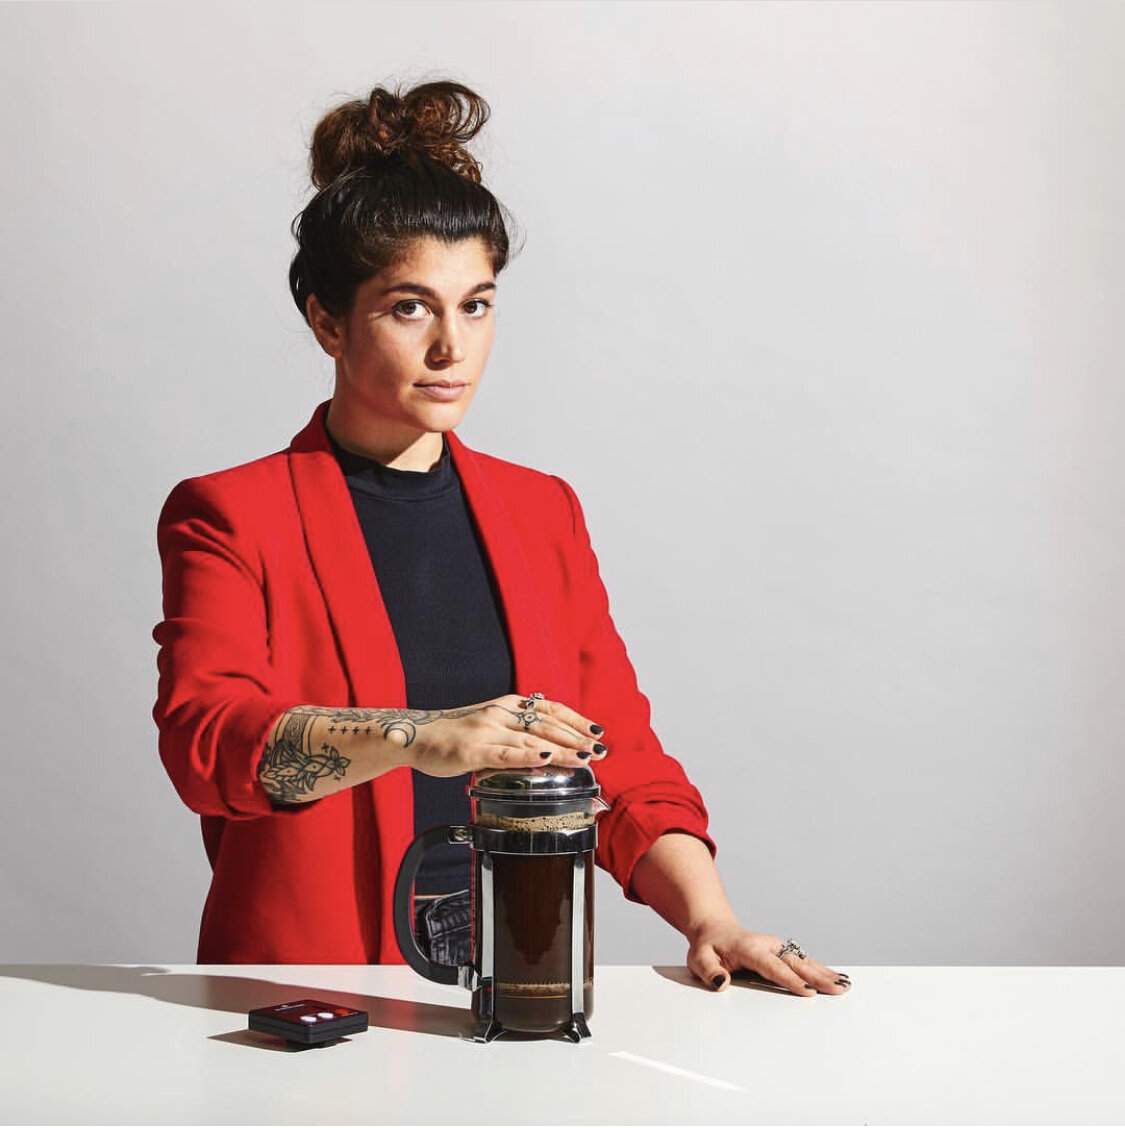 """Erika """"EV"""" Vonie, Licensed Q-Grader, 2017 Coffee Masters Champion, and Director of Coffee at Trade Coffee in New York City, NY."""